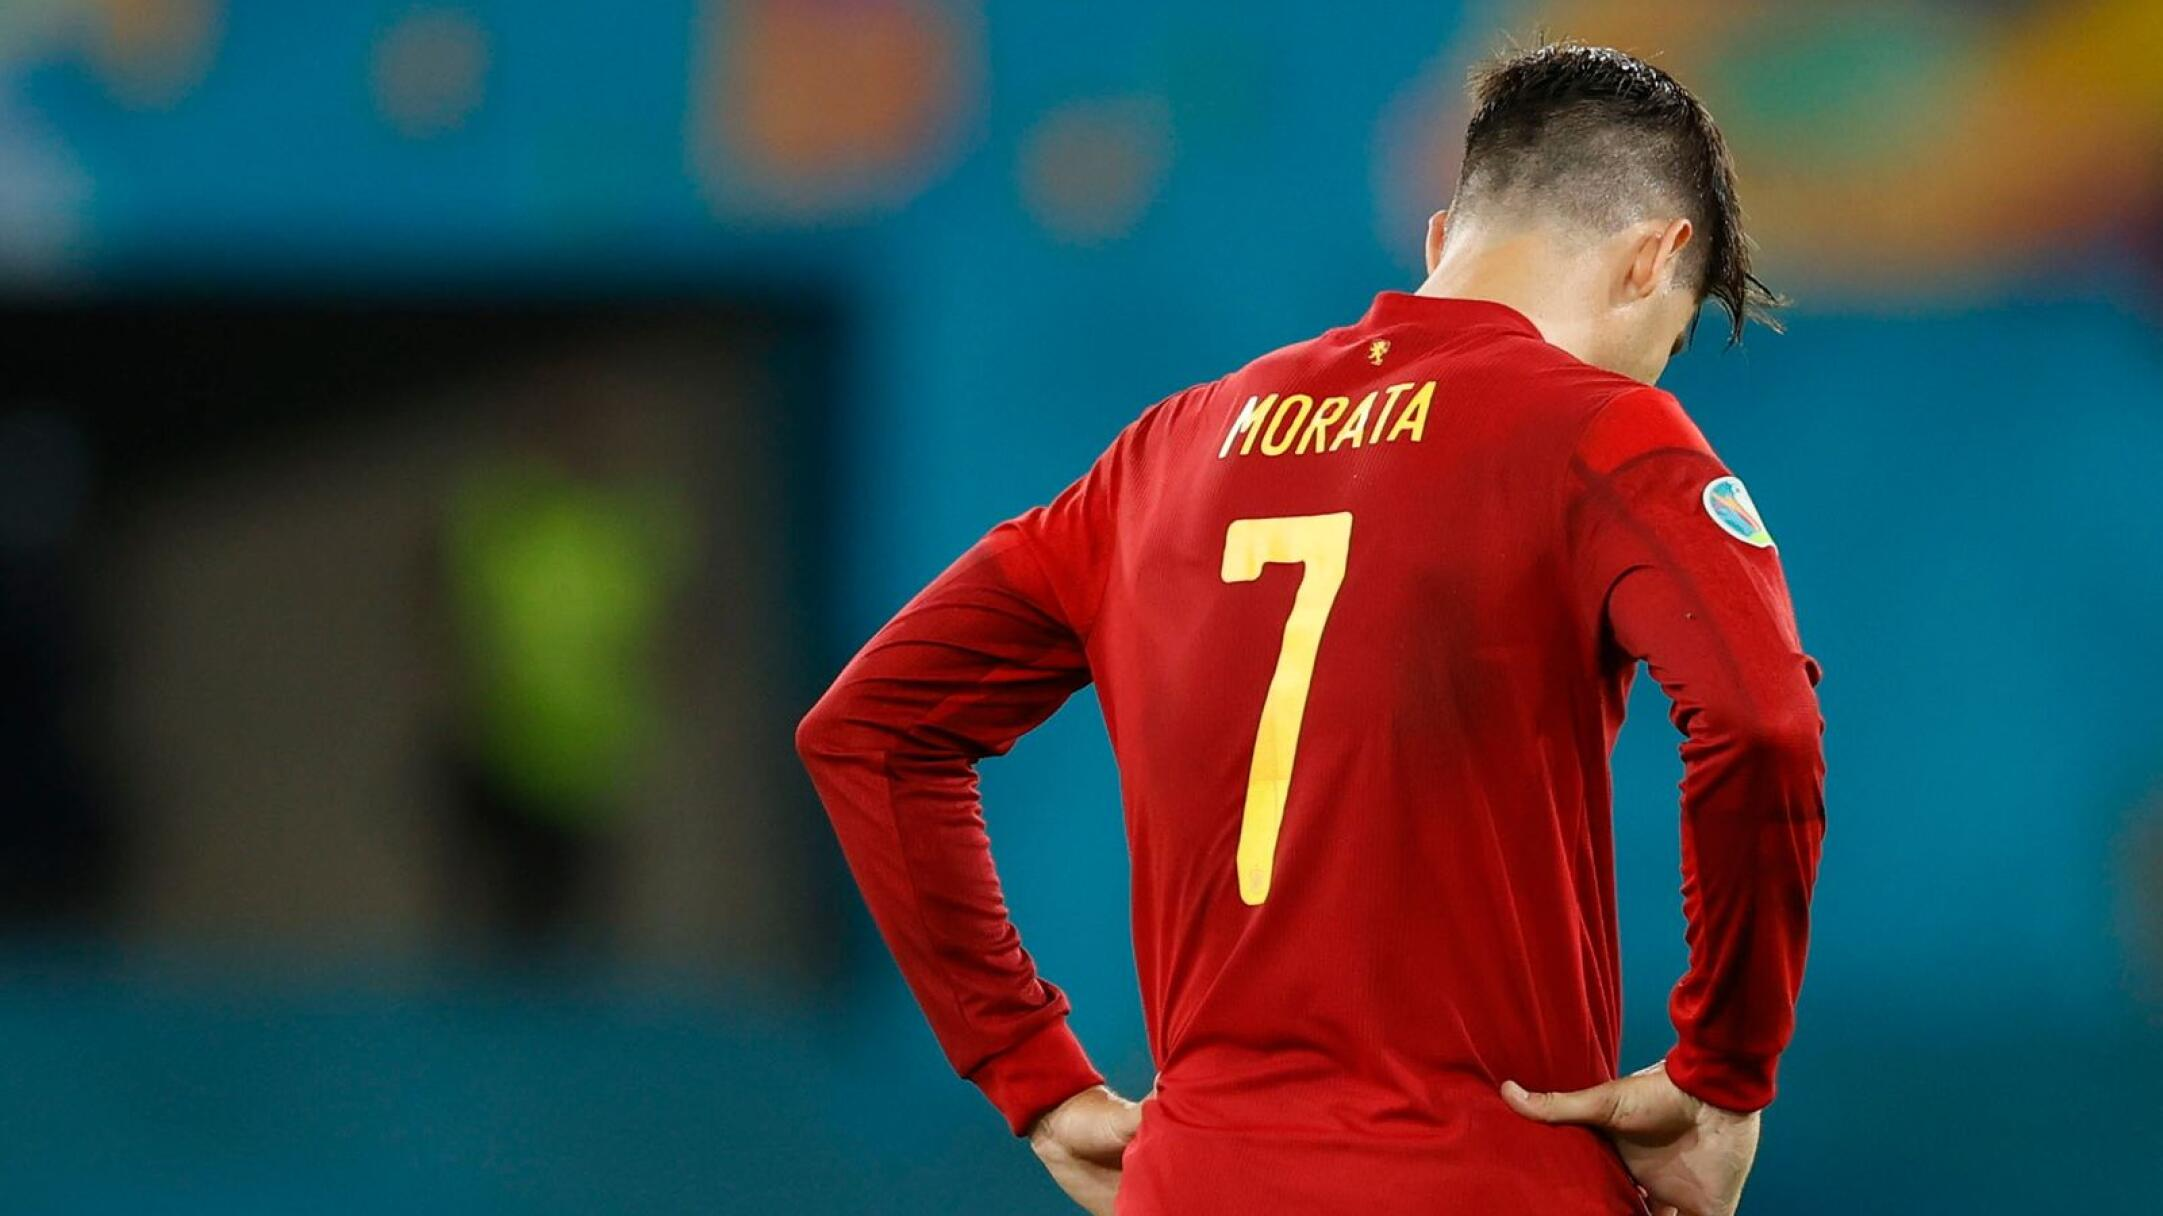 Spain's Alvaro Morata looks dejected at the end of their Euro 2020 match against Poland on Saturday